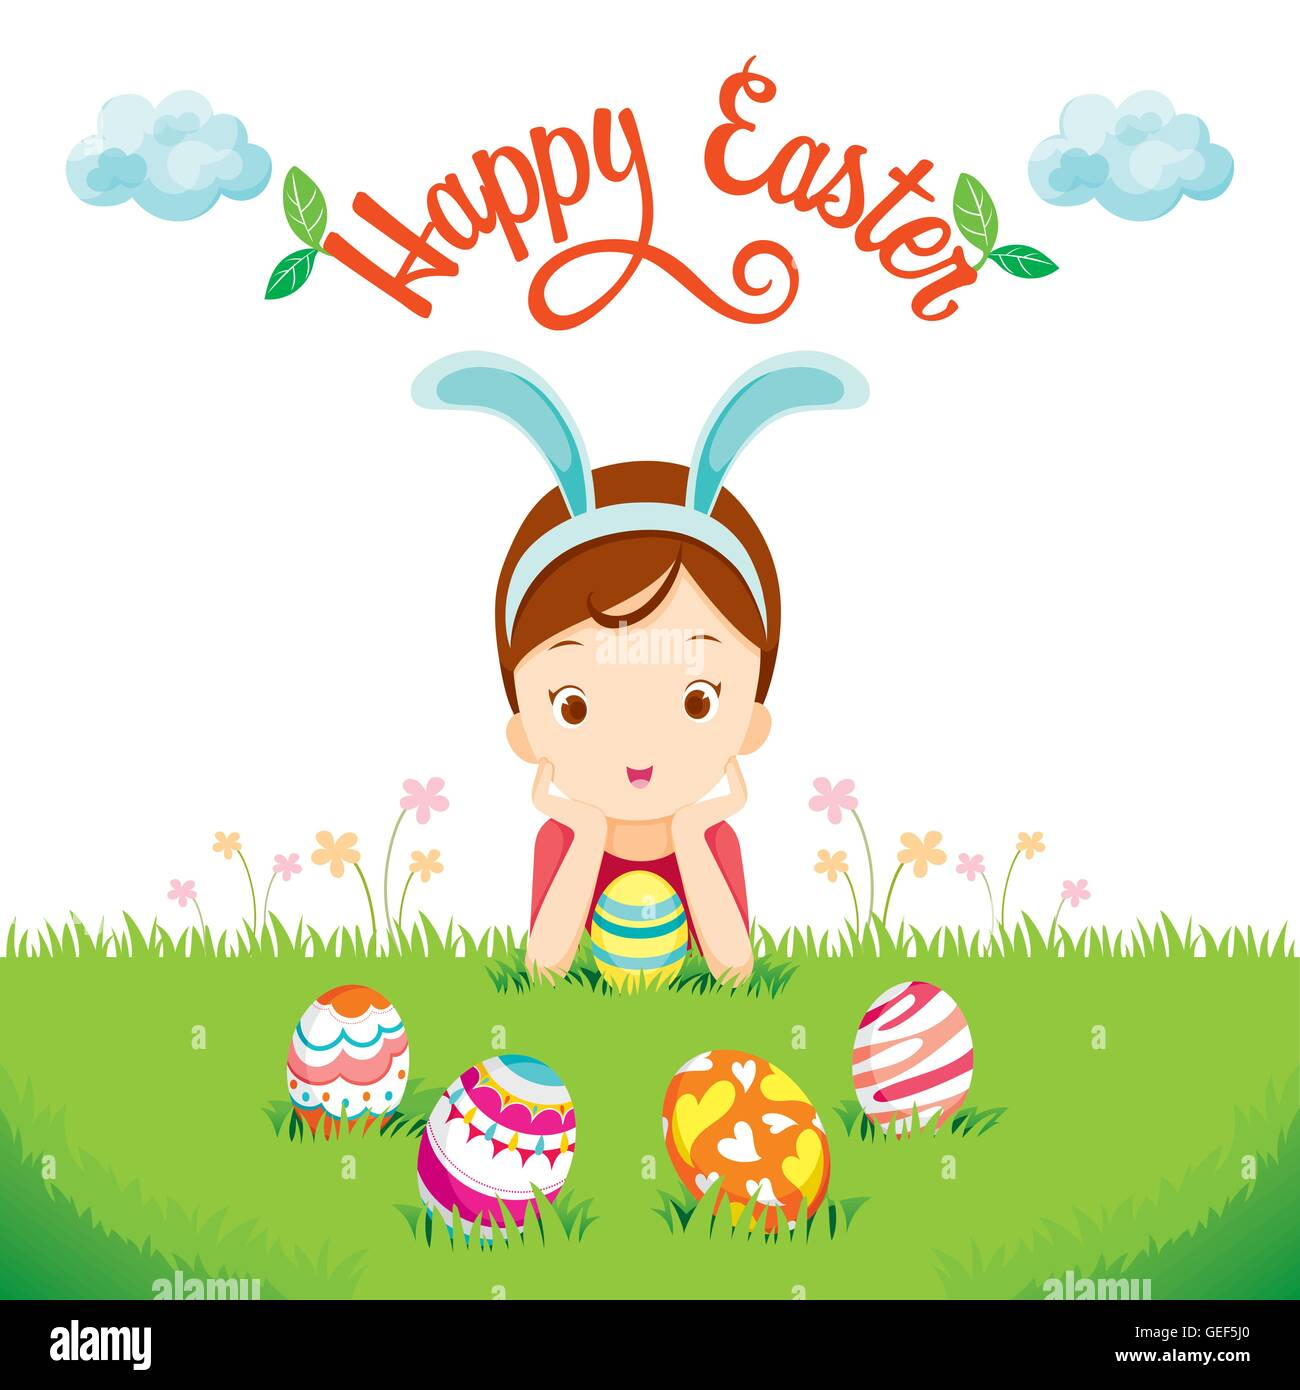 Girl And Easter Eggs On Lawn, Spring Season, Animal, Nature, Decorating, Festive, Celebrations - Stock Vector